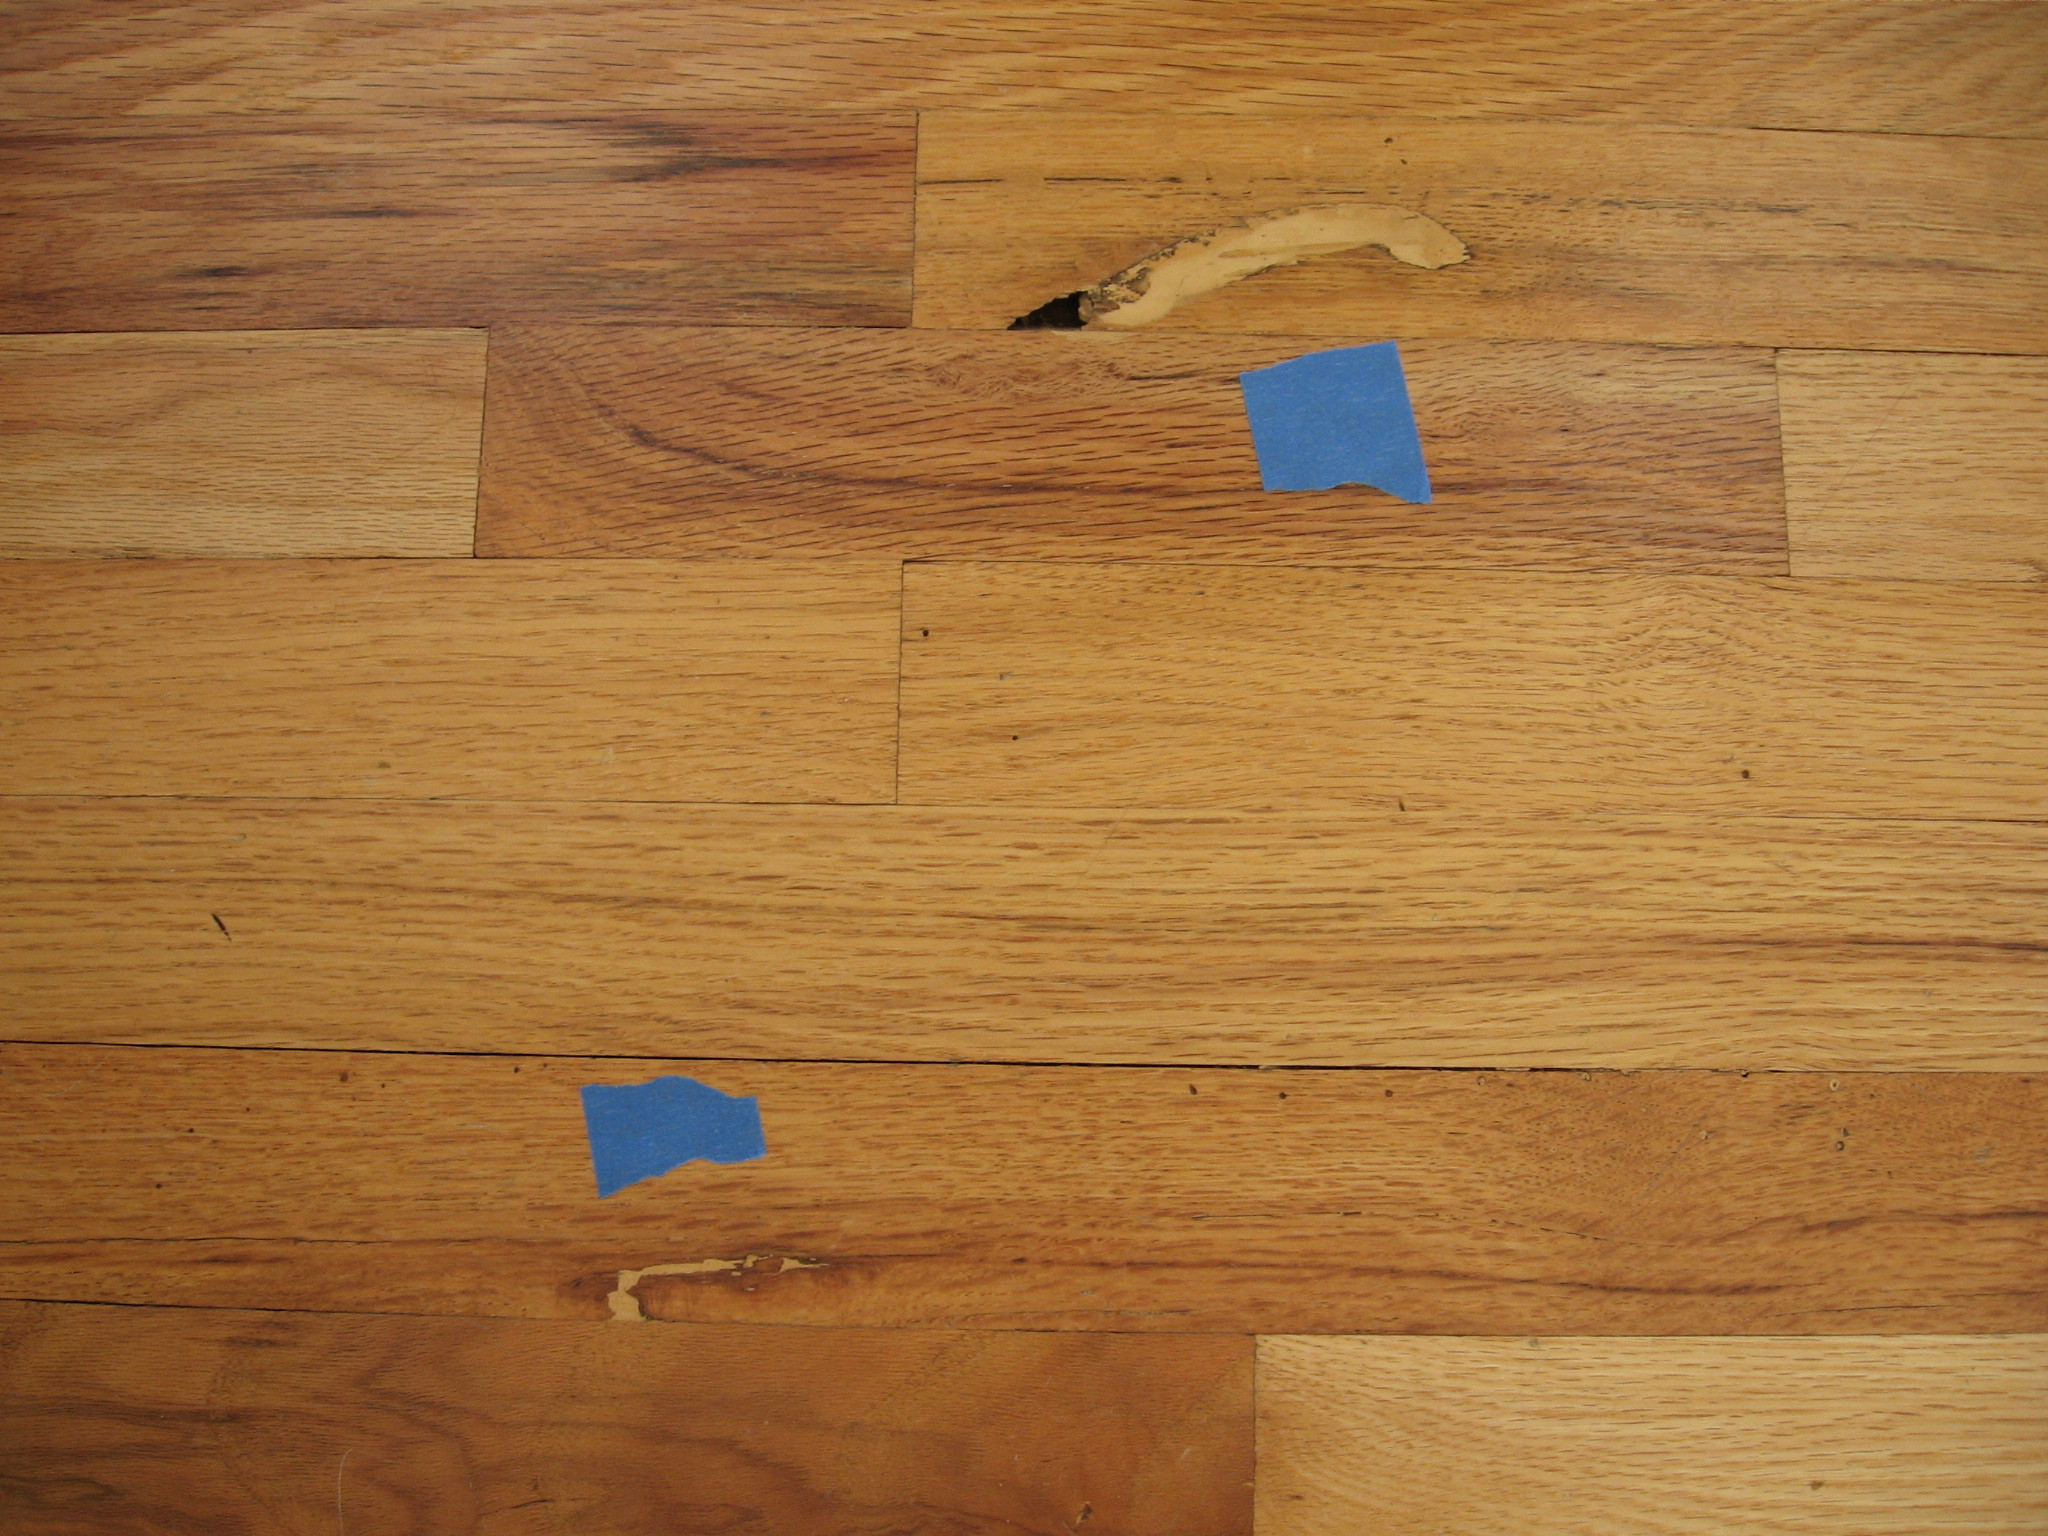 refinishing hardwood floors how long does it take of wood floor techniques 101 with filler bad